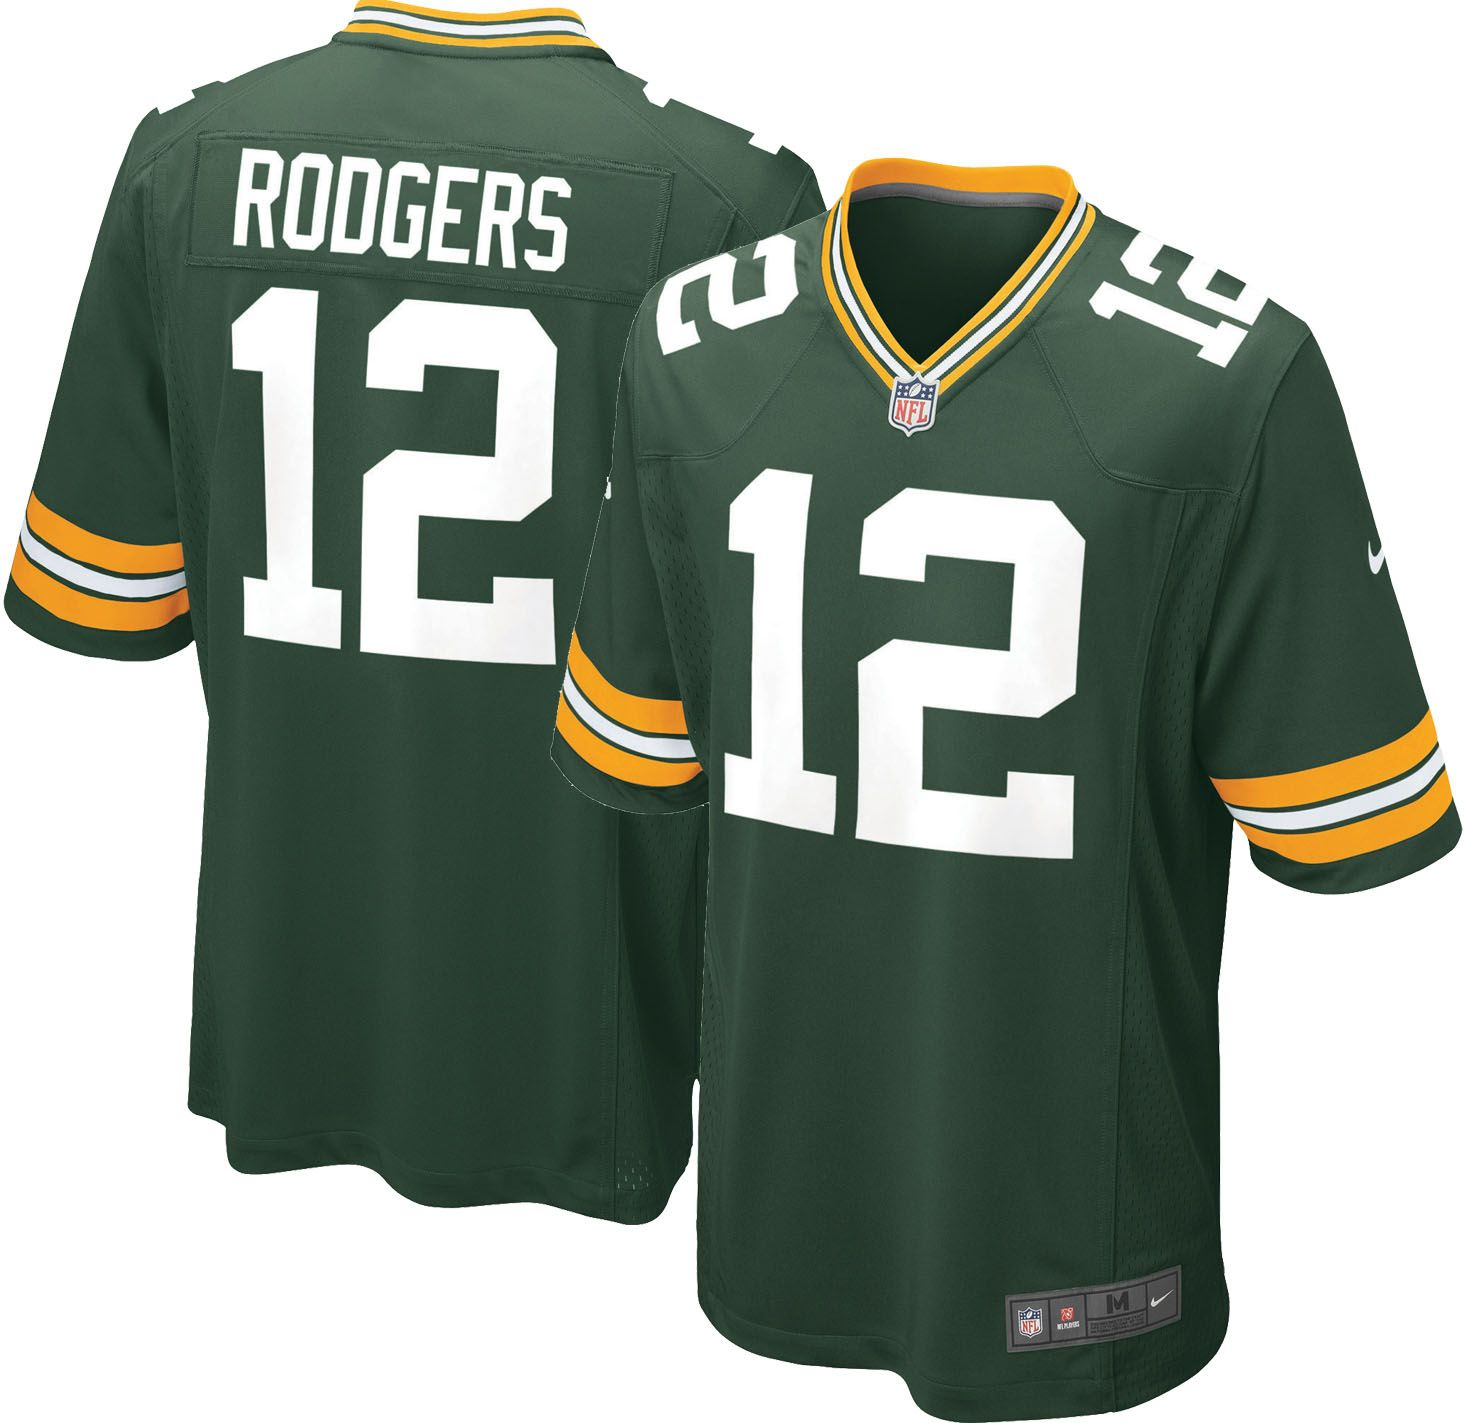 rodgers shirt